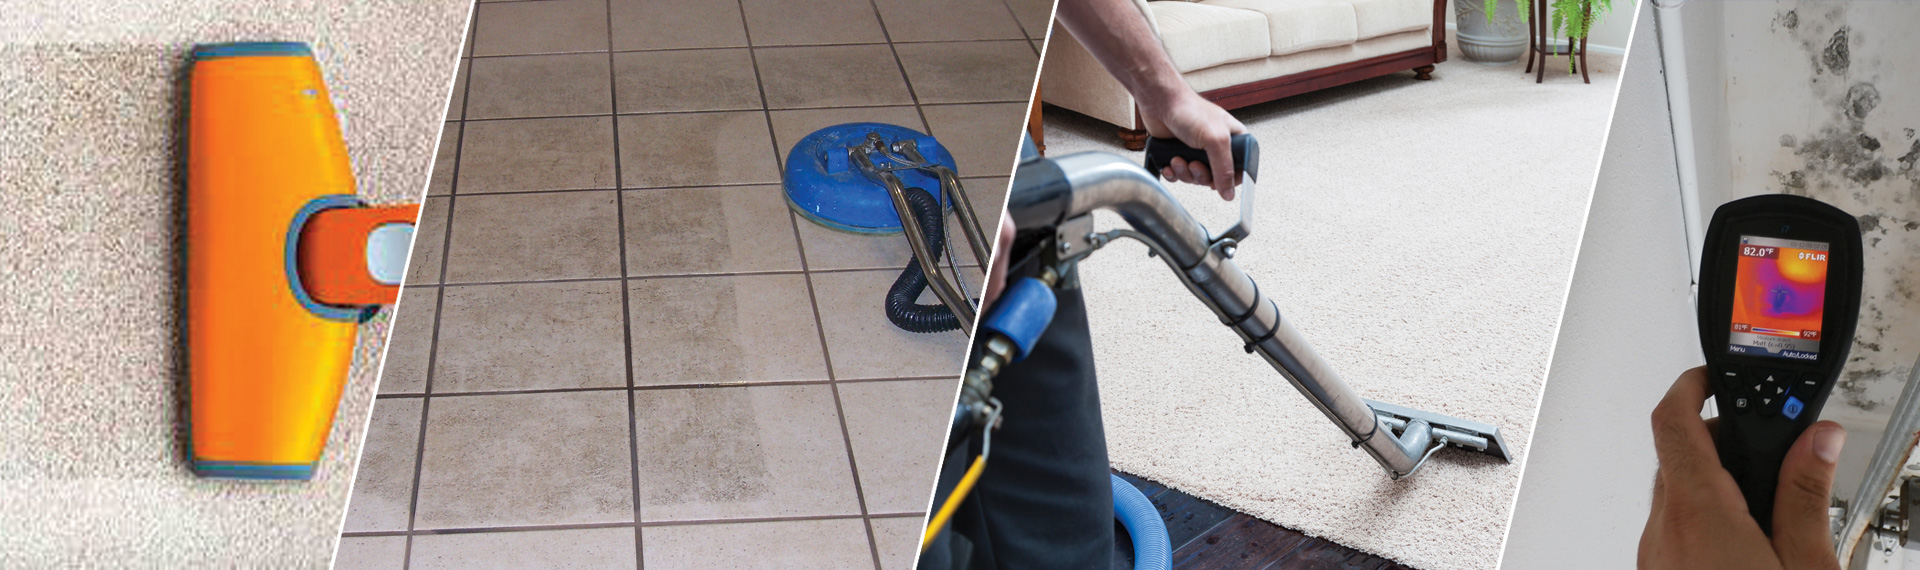 City Carpet Cleaners & Water Damage Restoration Sugarland TX